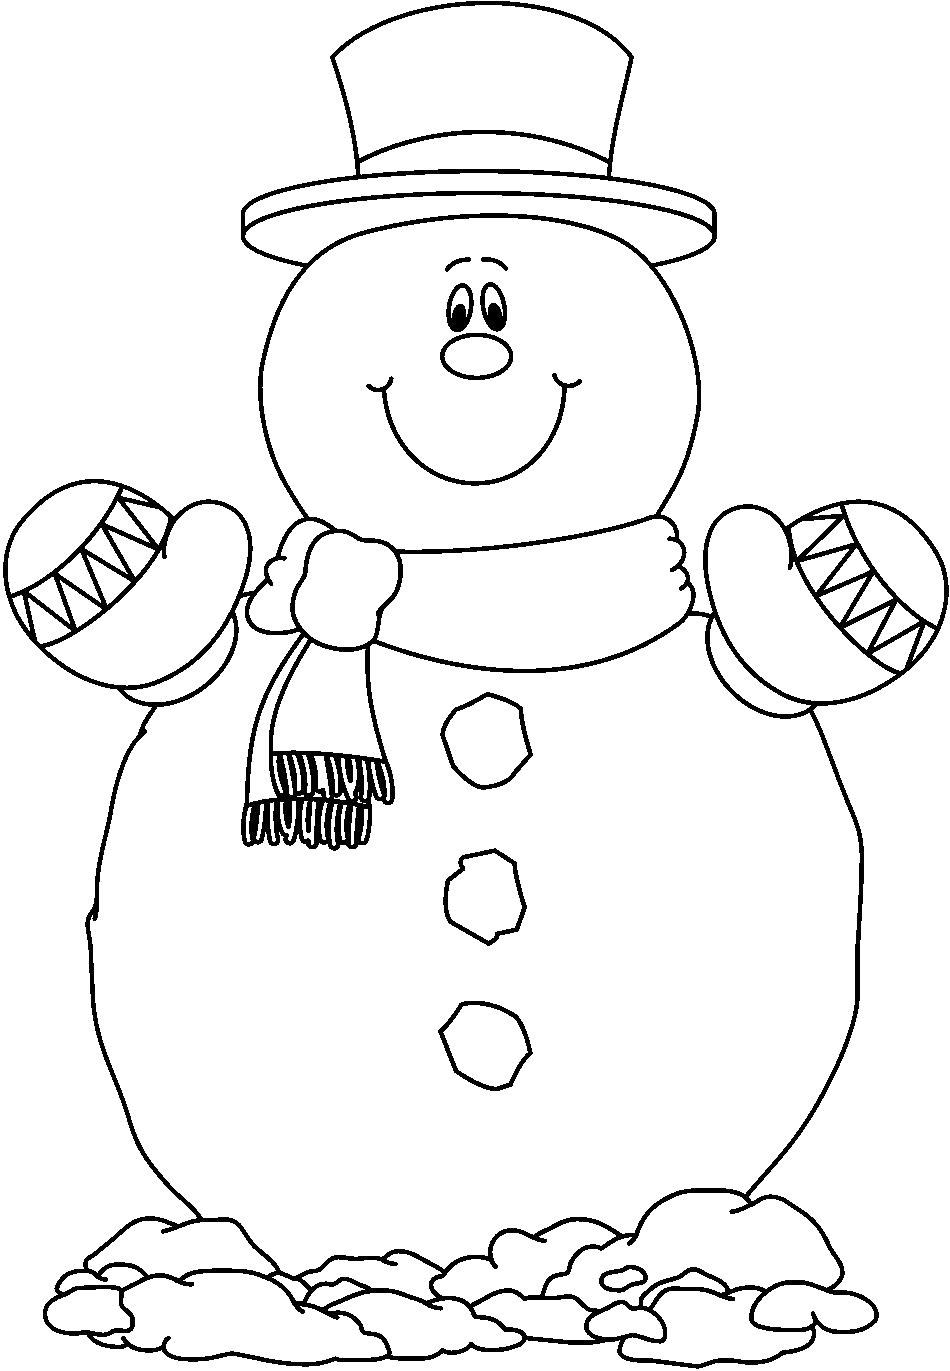 Christmas Coloring Pages Snowman With Compromise Pictures Of Snowmen To Color Rare